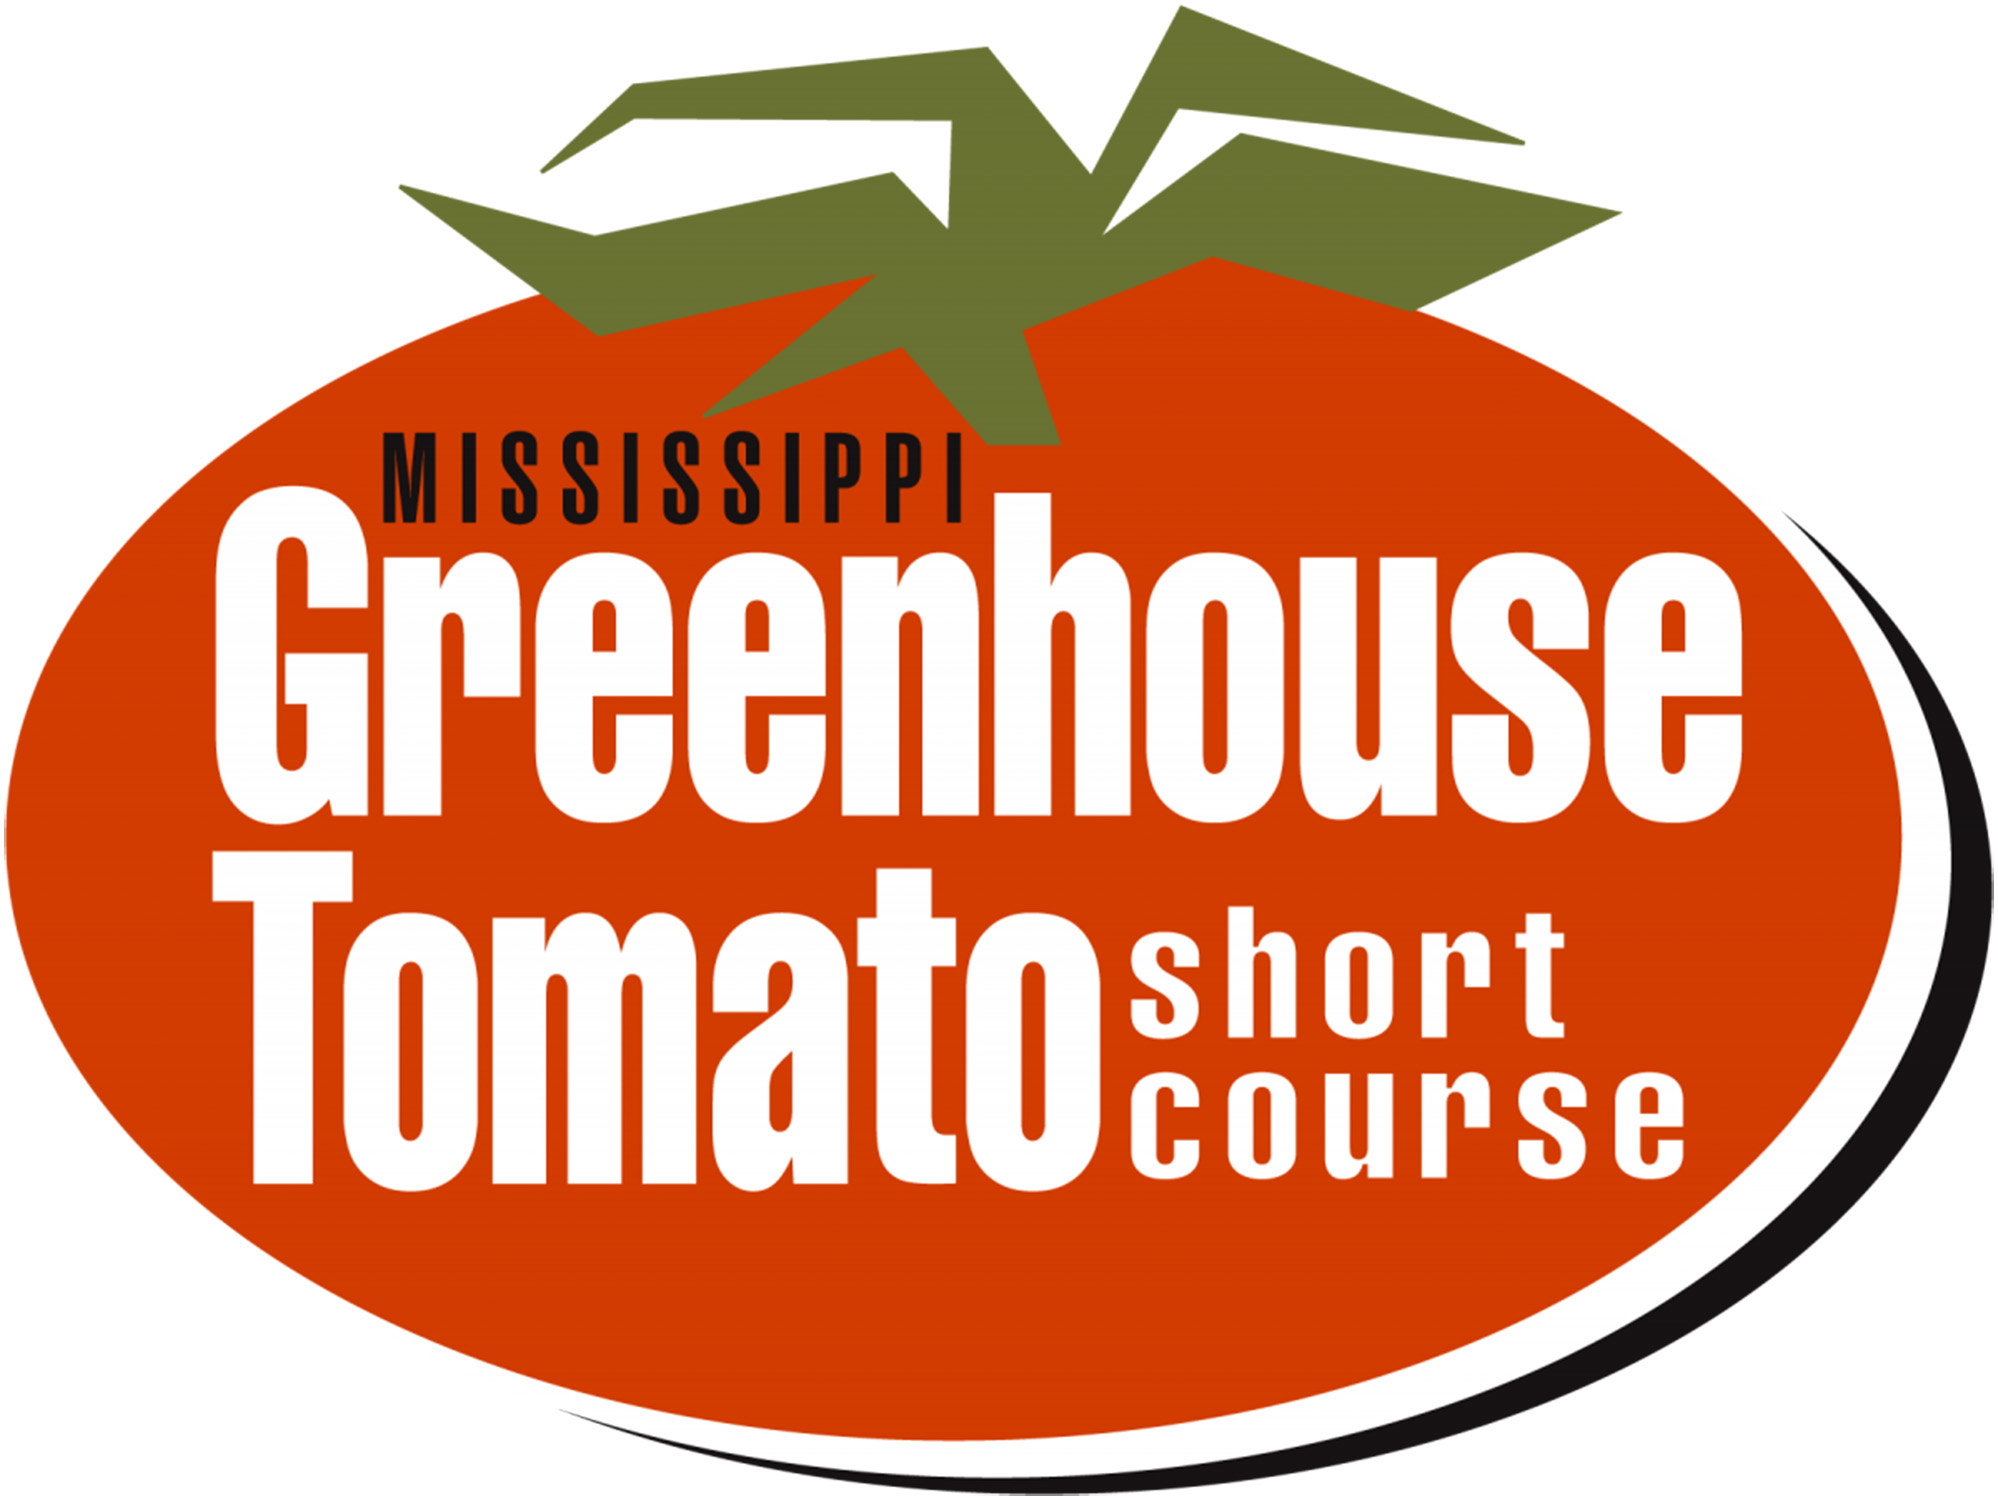 What kind of fertilizer can I use for greenhouse tomatoes